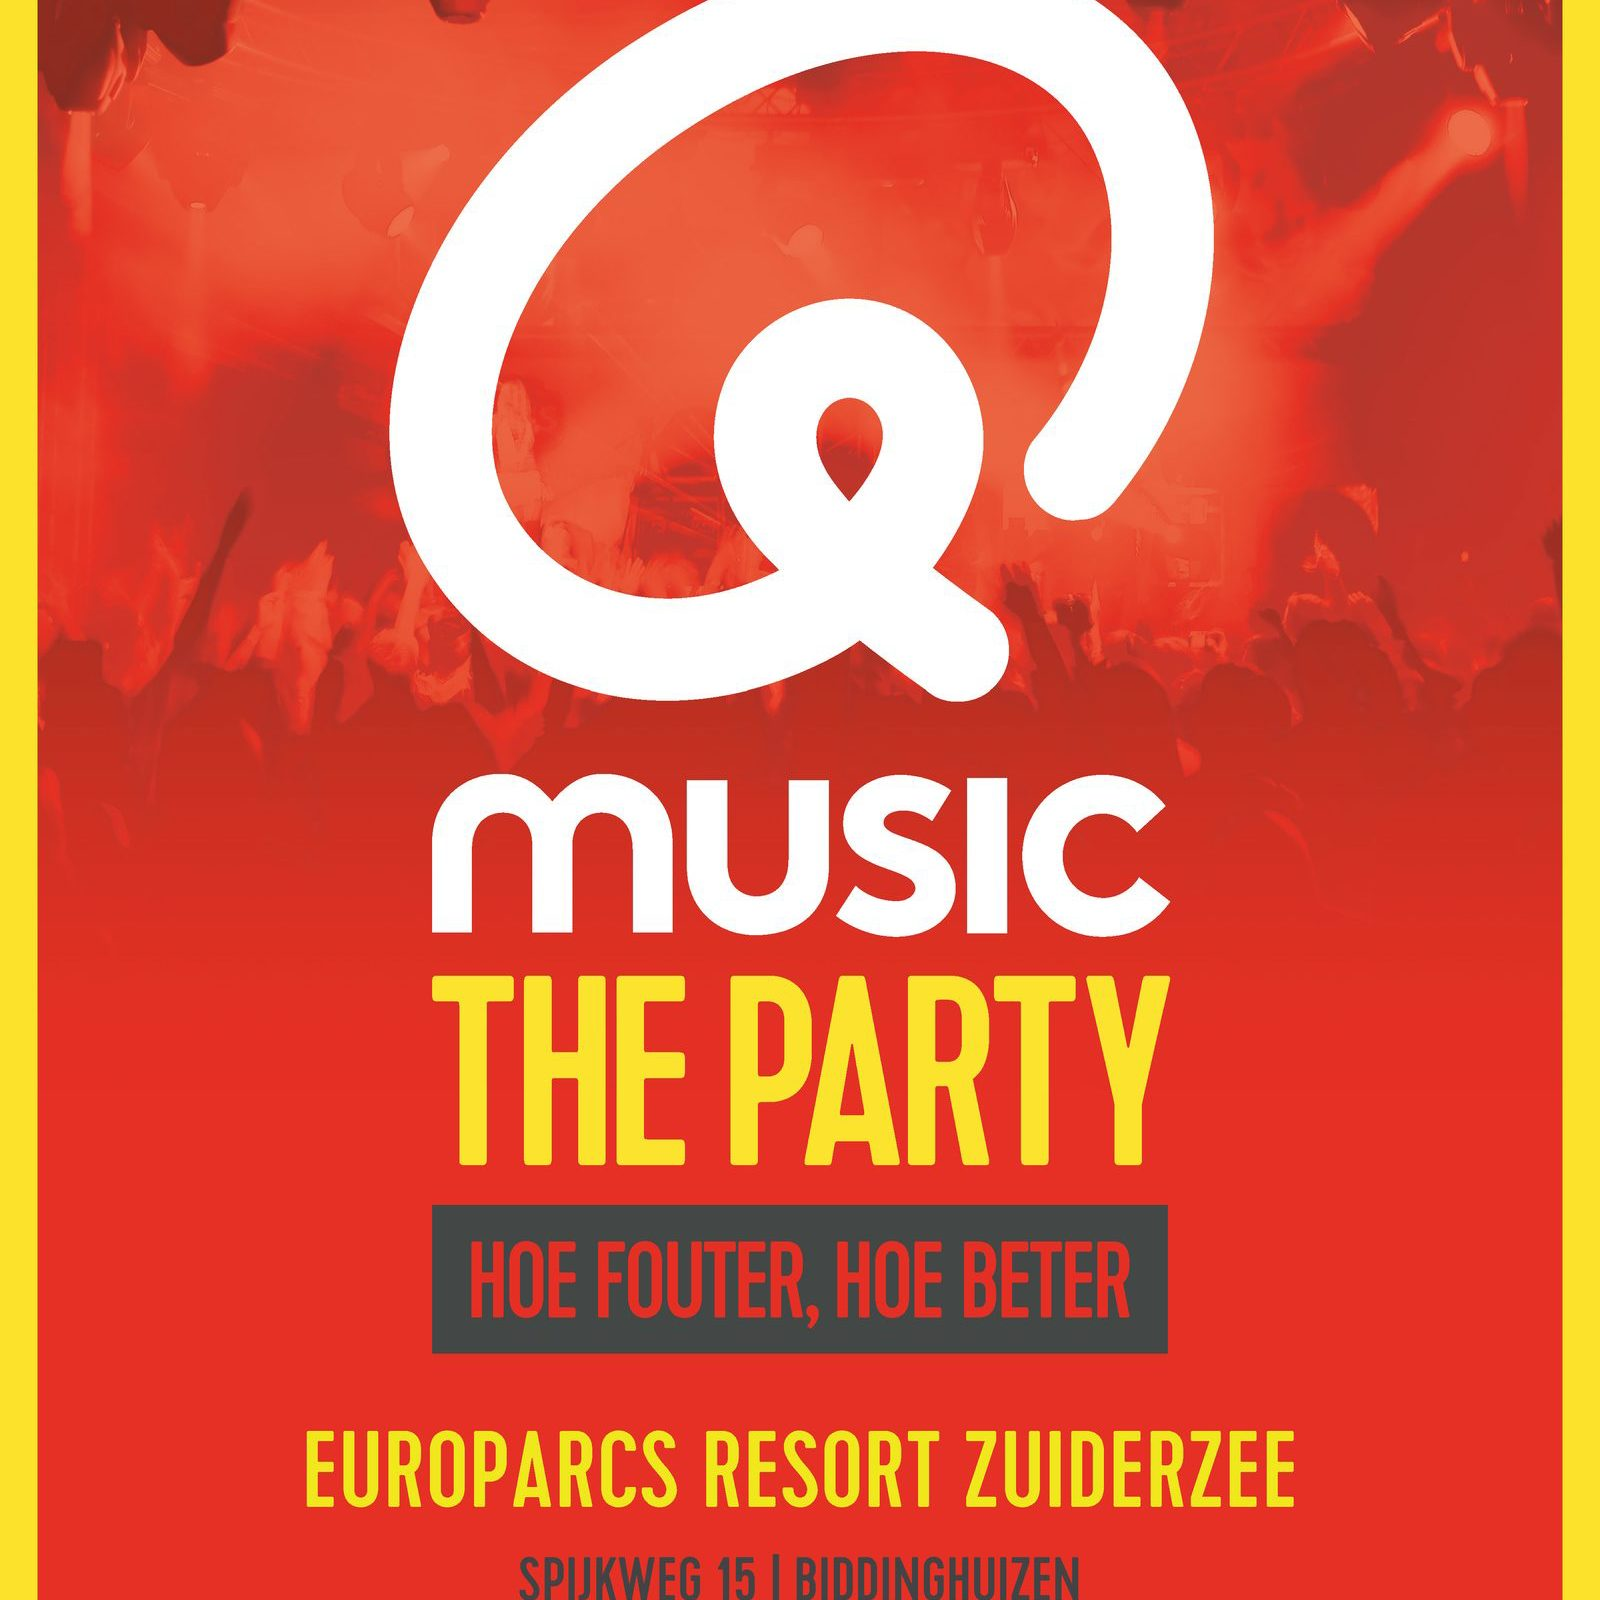 Q-Music, die Party - desto schlechter, desto besser!